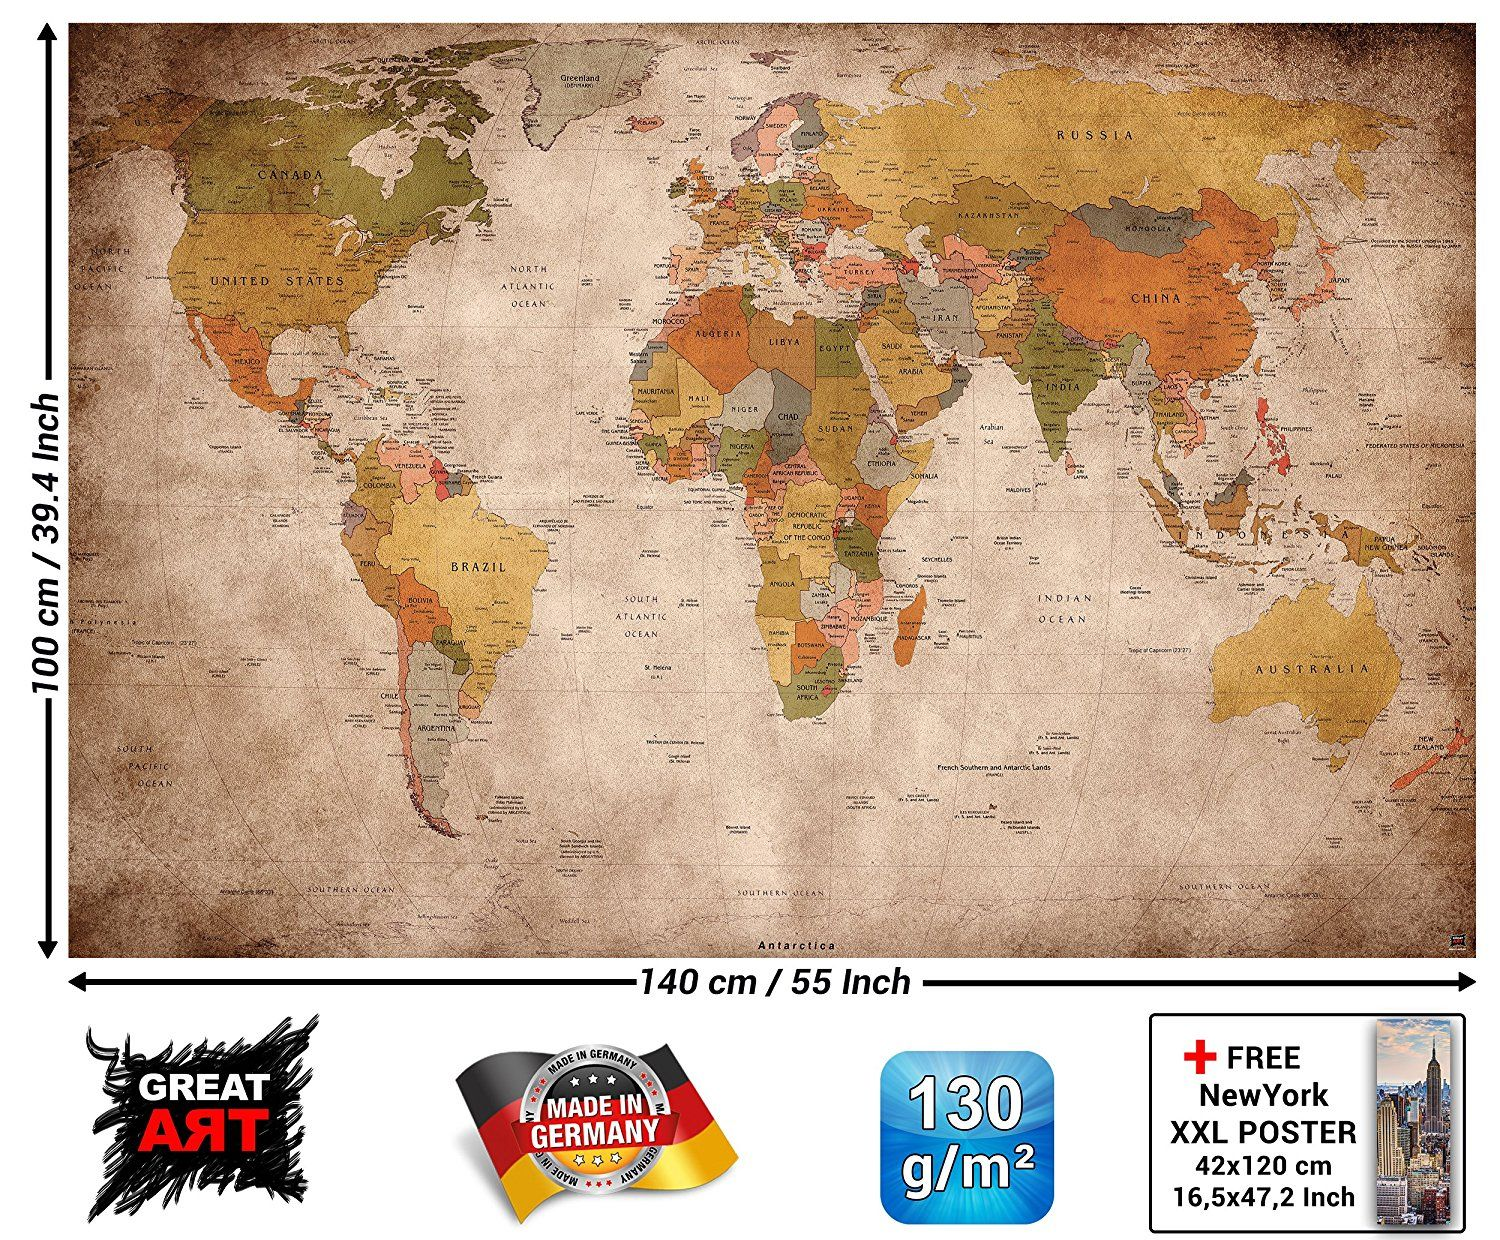 25 amazon great art xxl poster world map photo wallpaper 25 amazon great art xxl poster world map photo wallpaper vintage retro motif gumiabroncs Images